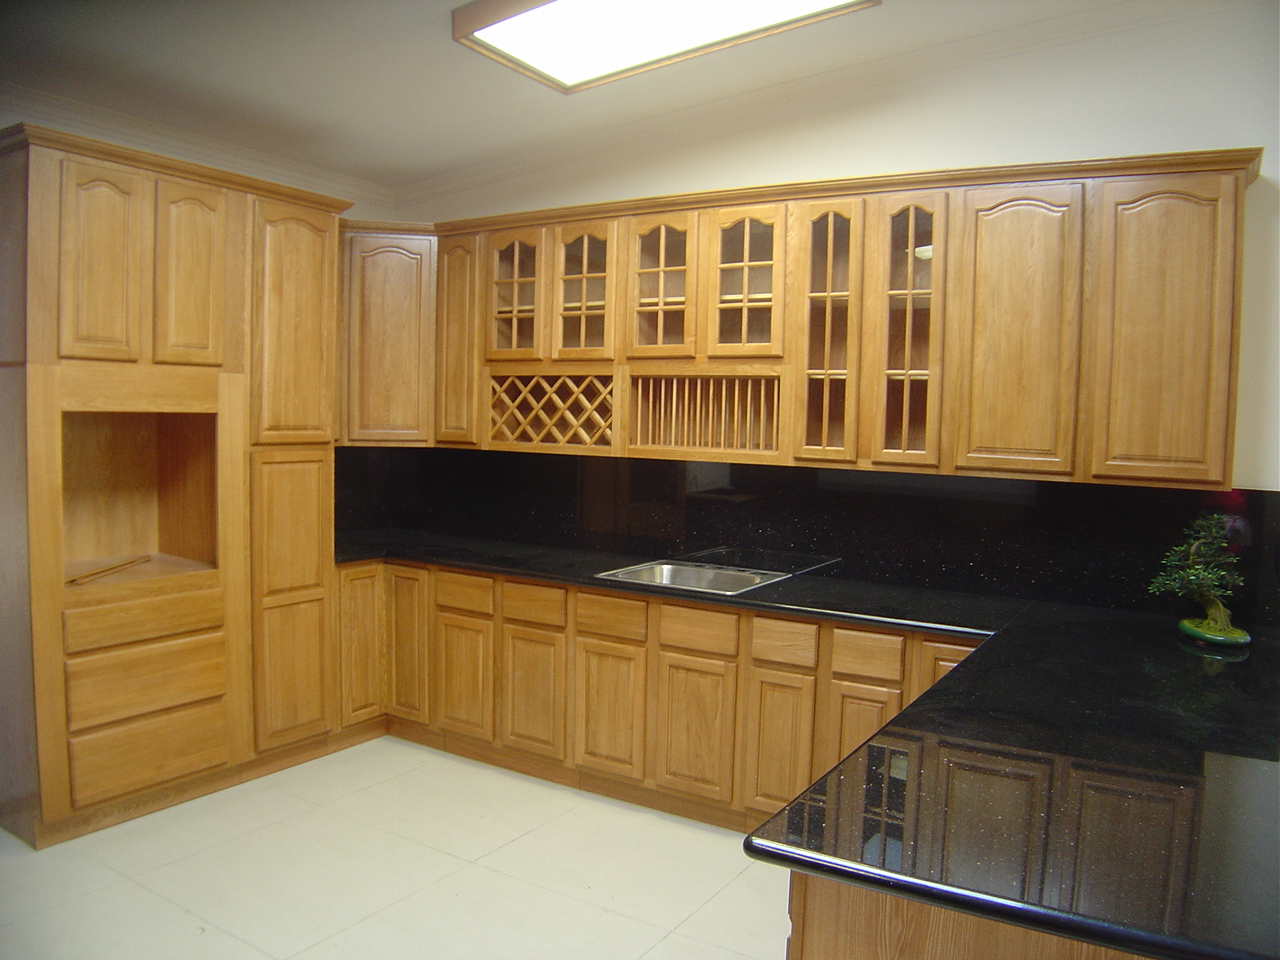 Oak kitchen cabinets for your interior kitchen minimalist for Kitchen furniture design